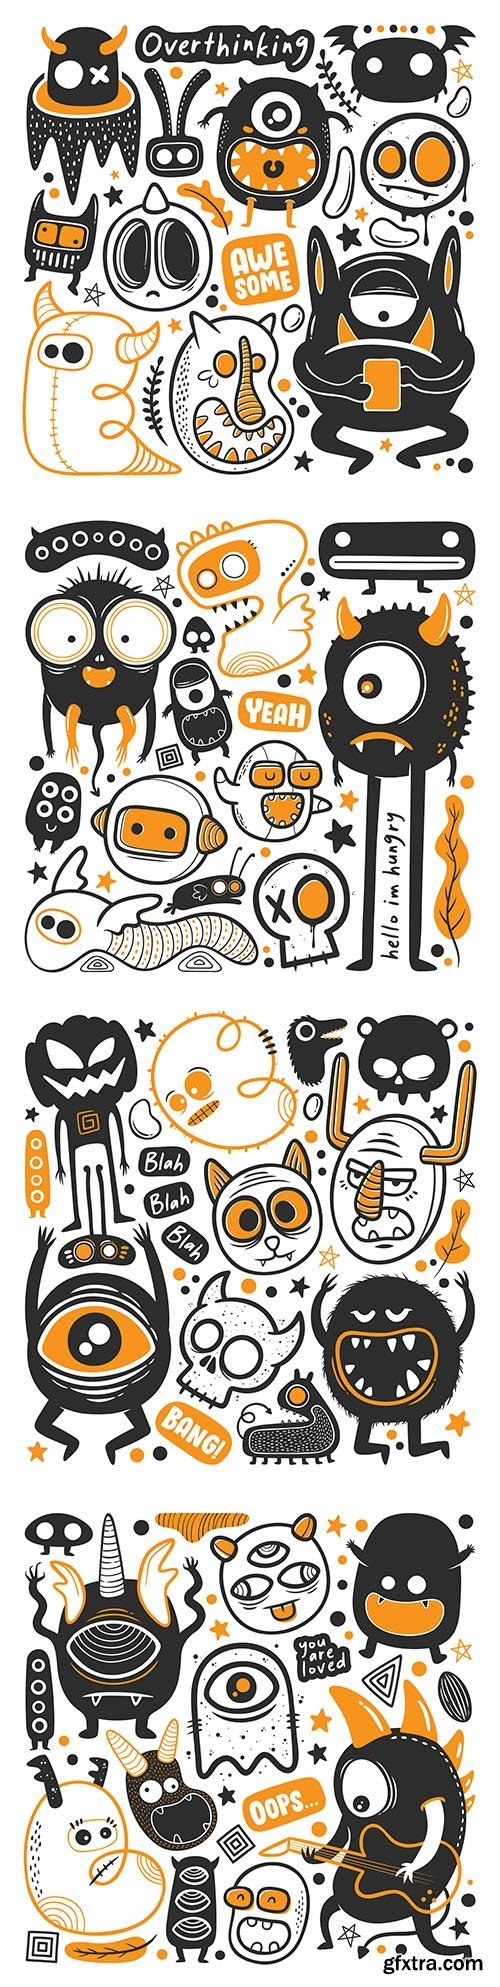 Funny monster painted caracula vector illustration